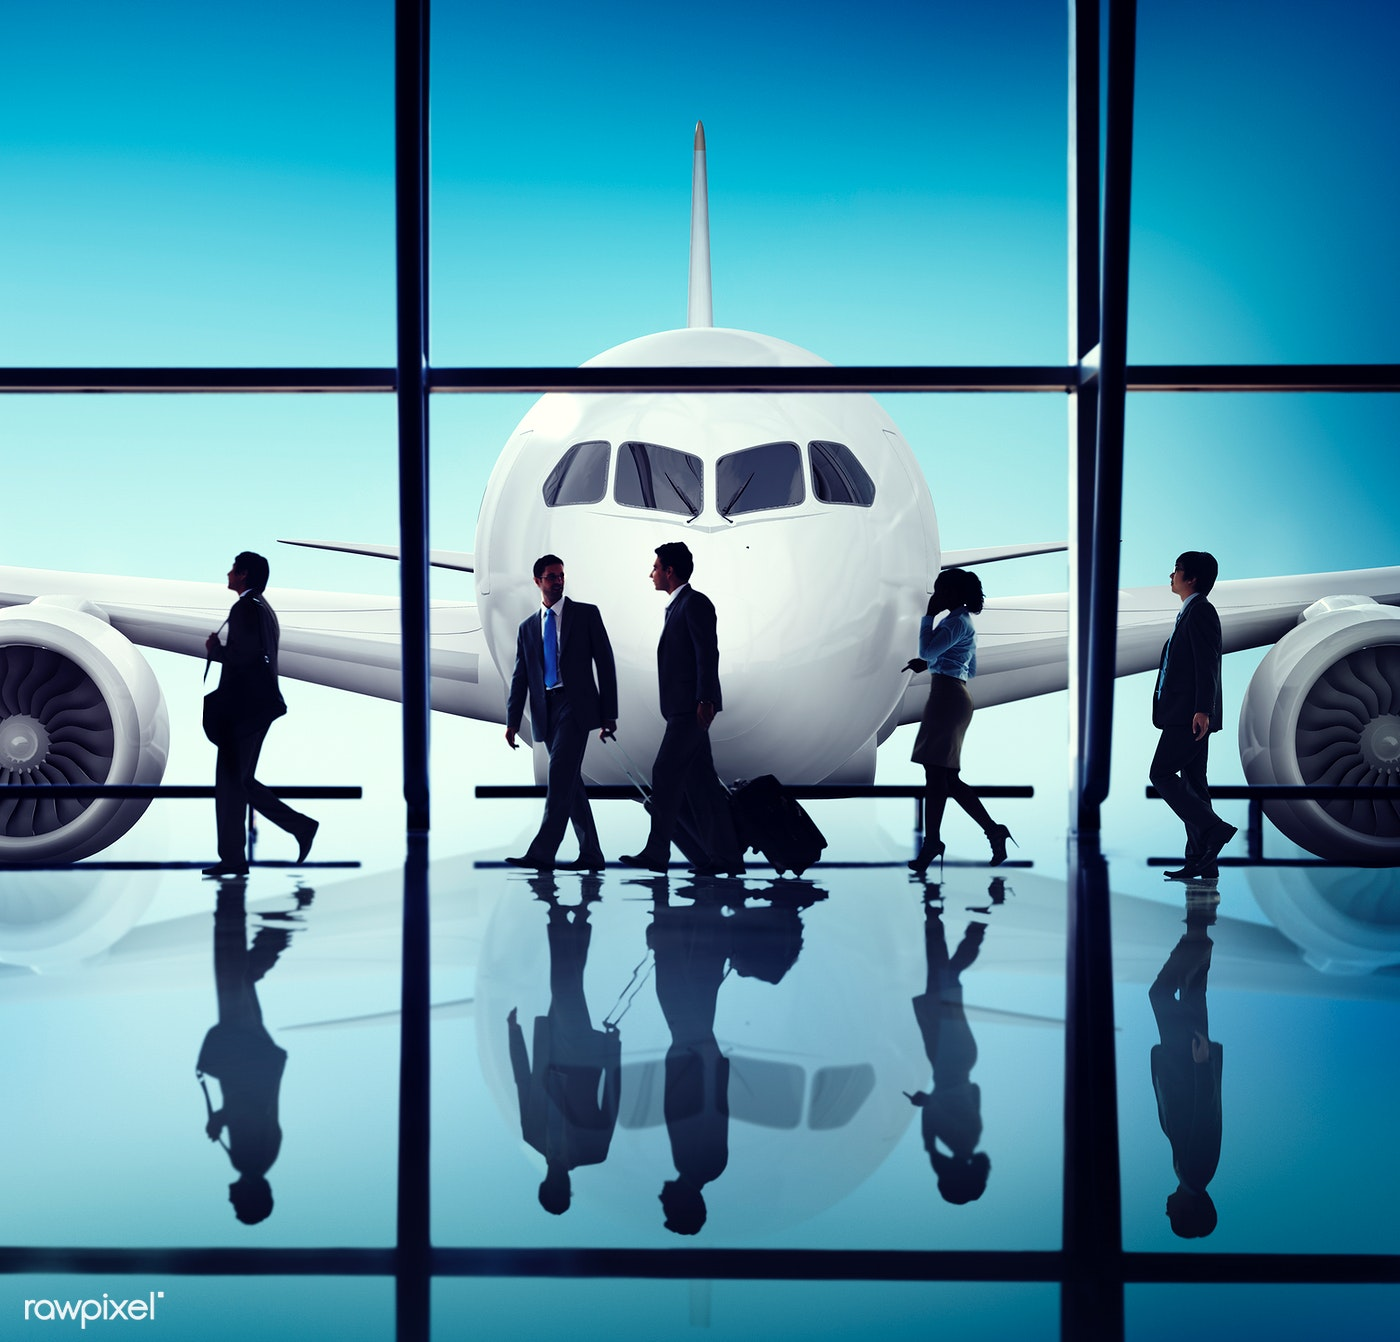 Business people traveling from an airport